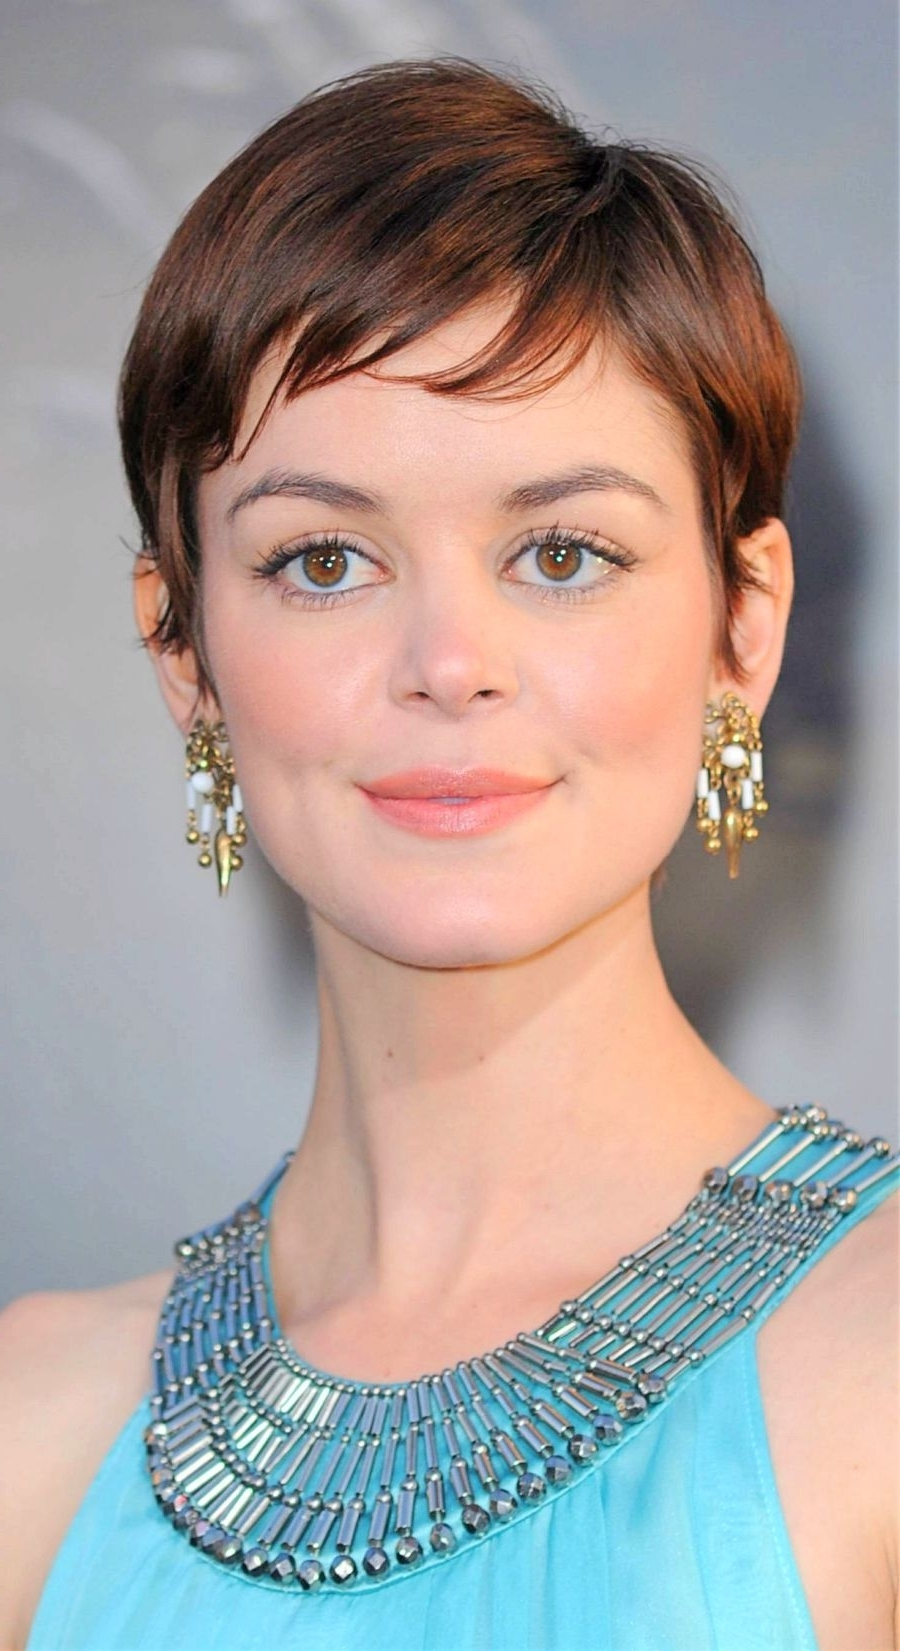 Short Pixie Hairstyles For Curly Hair Intended For Latest Pixie Hairstyles With Curly Hair (View 22 of 33)